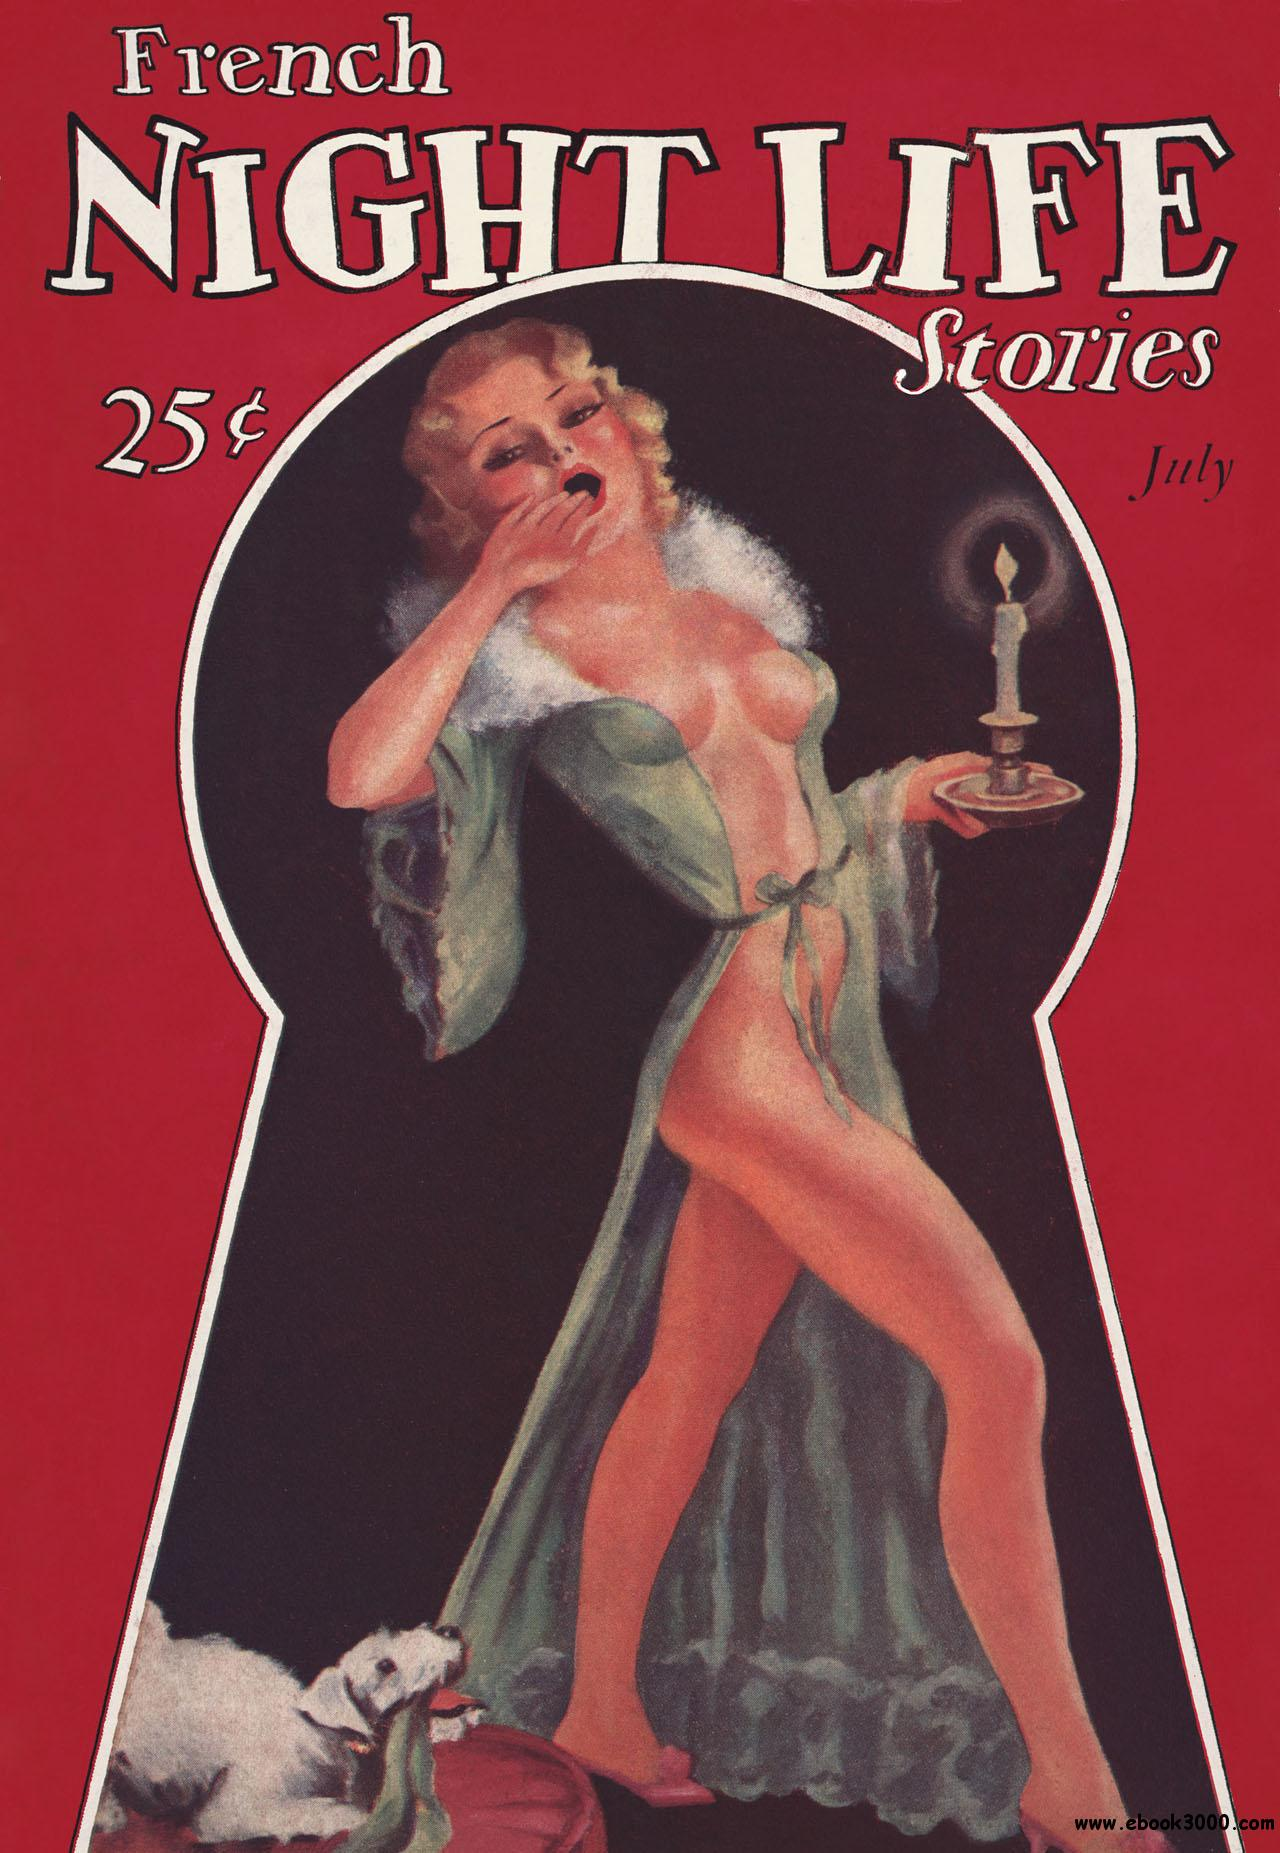 French Night Life Stories Vo l3 No 1 (1936) free download